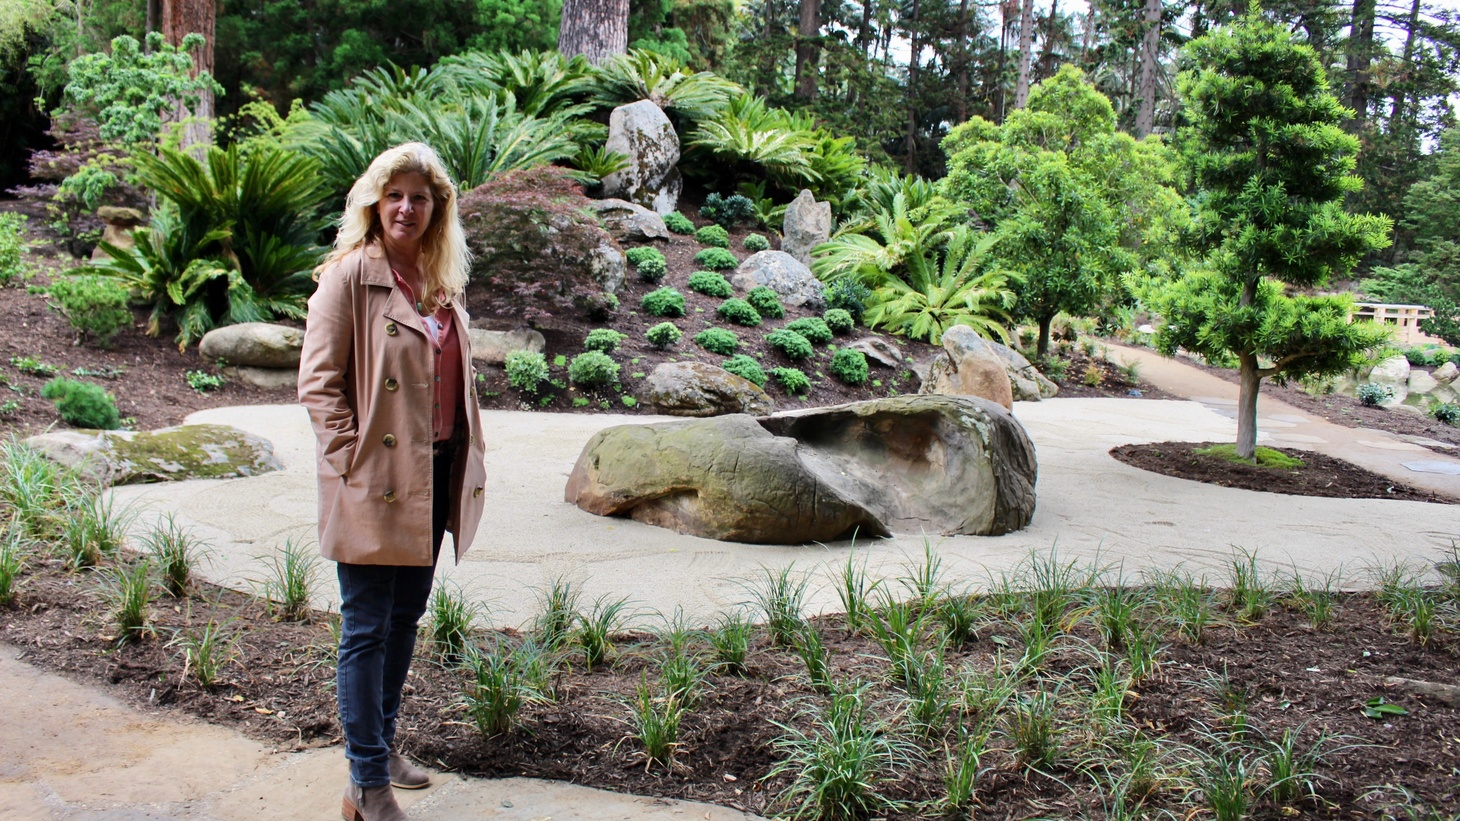 Despite the near perfection of Lotusland's new Japanese Garden, CEO, Gwen Stauffer (pictured) invites strollers to contemplate life's mysterious imperfection.